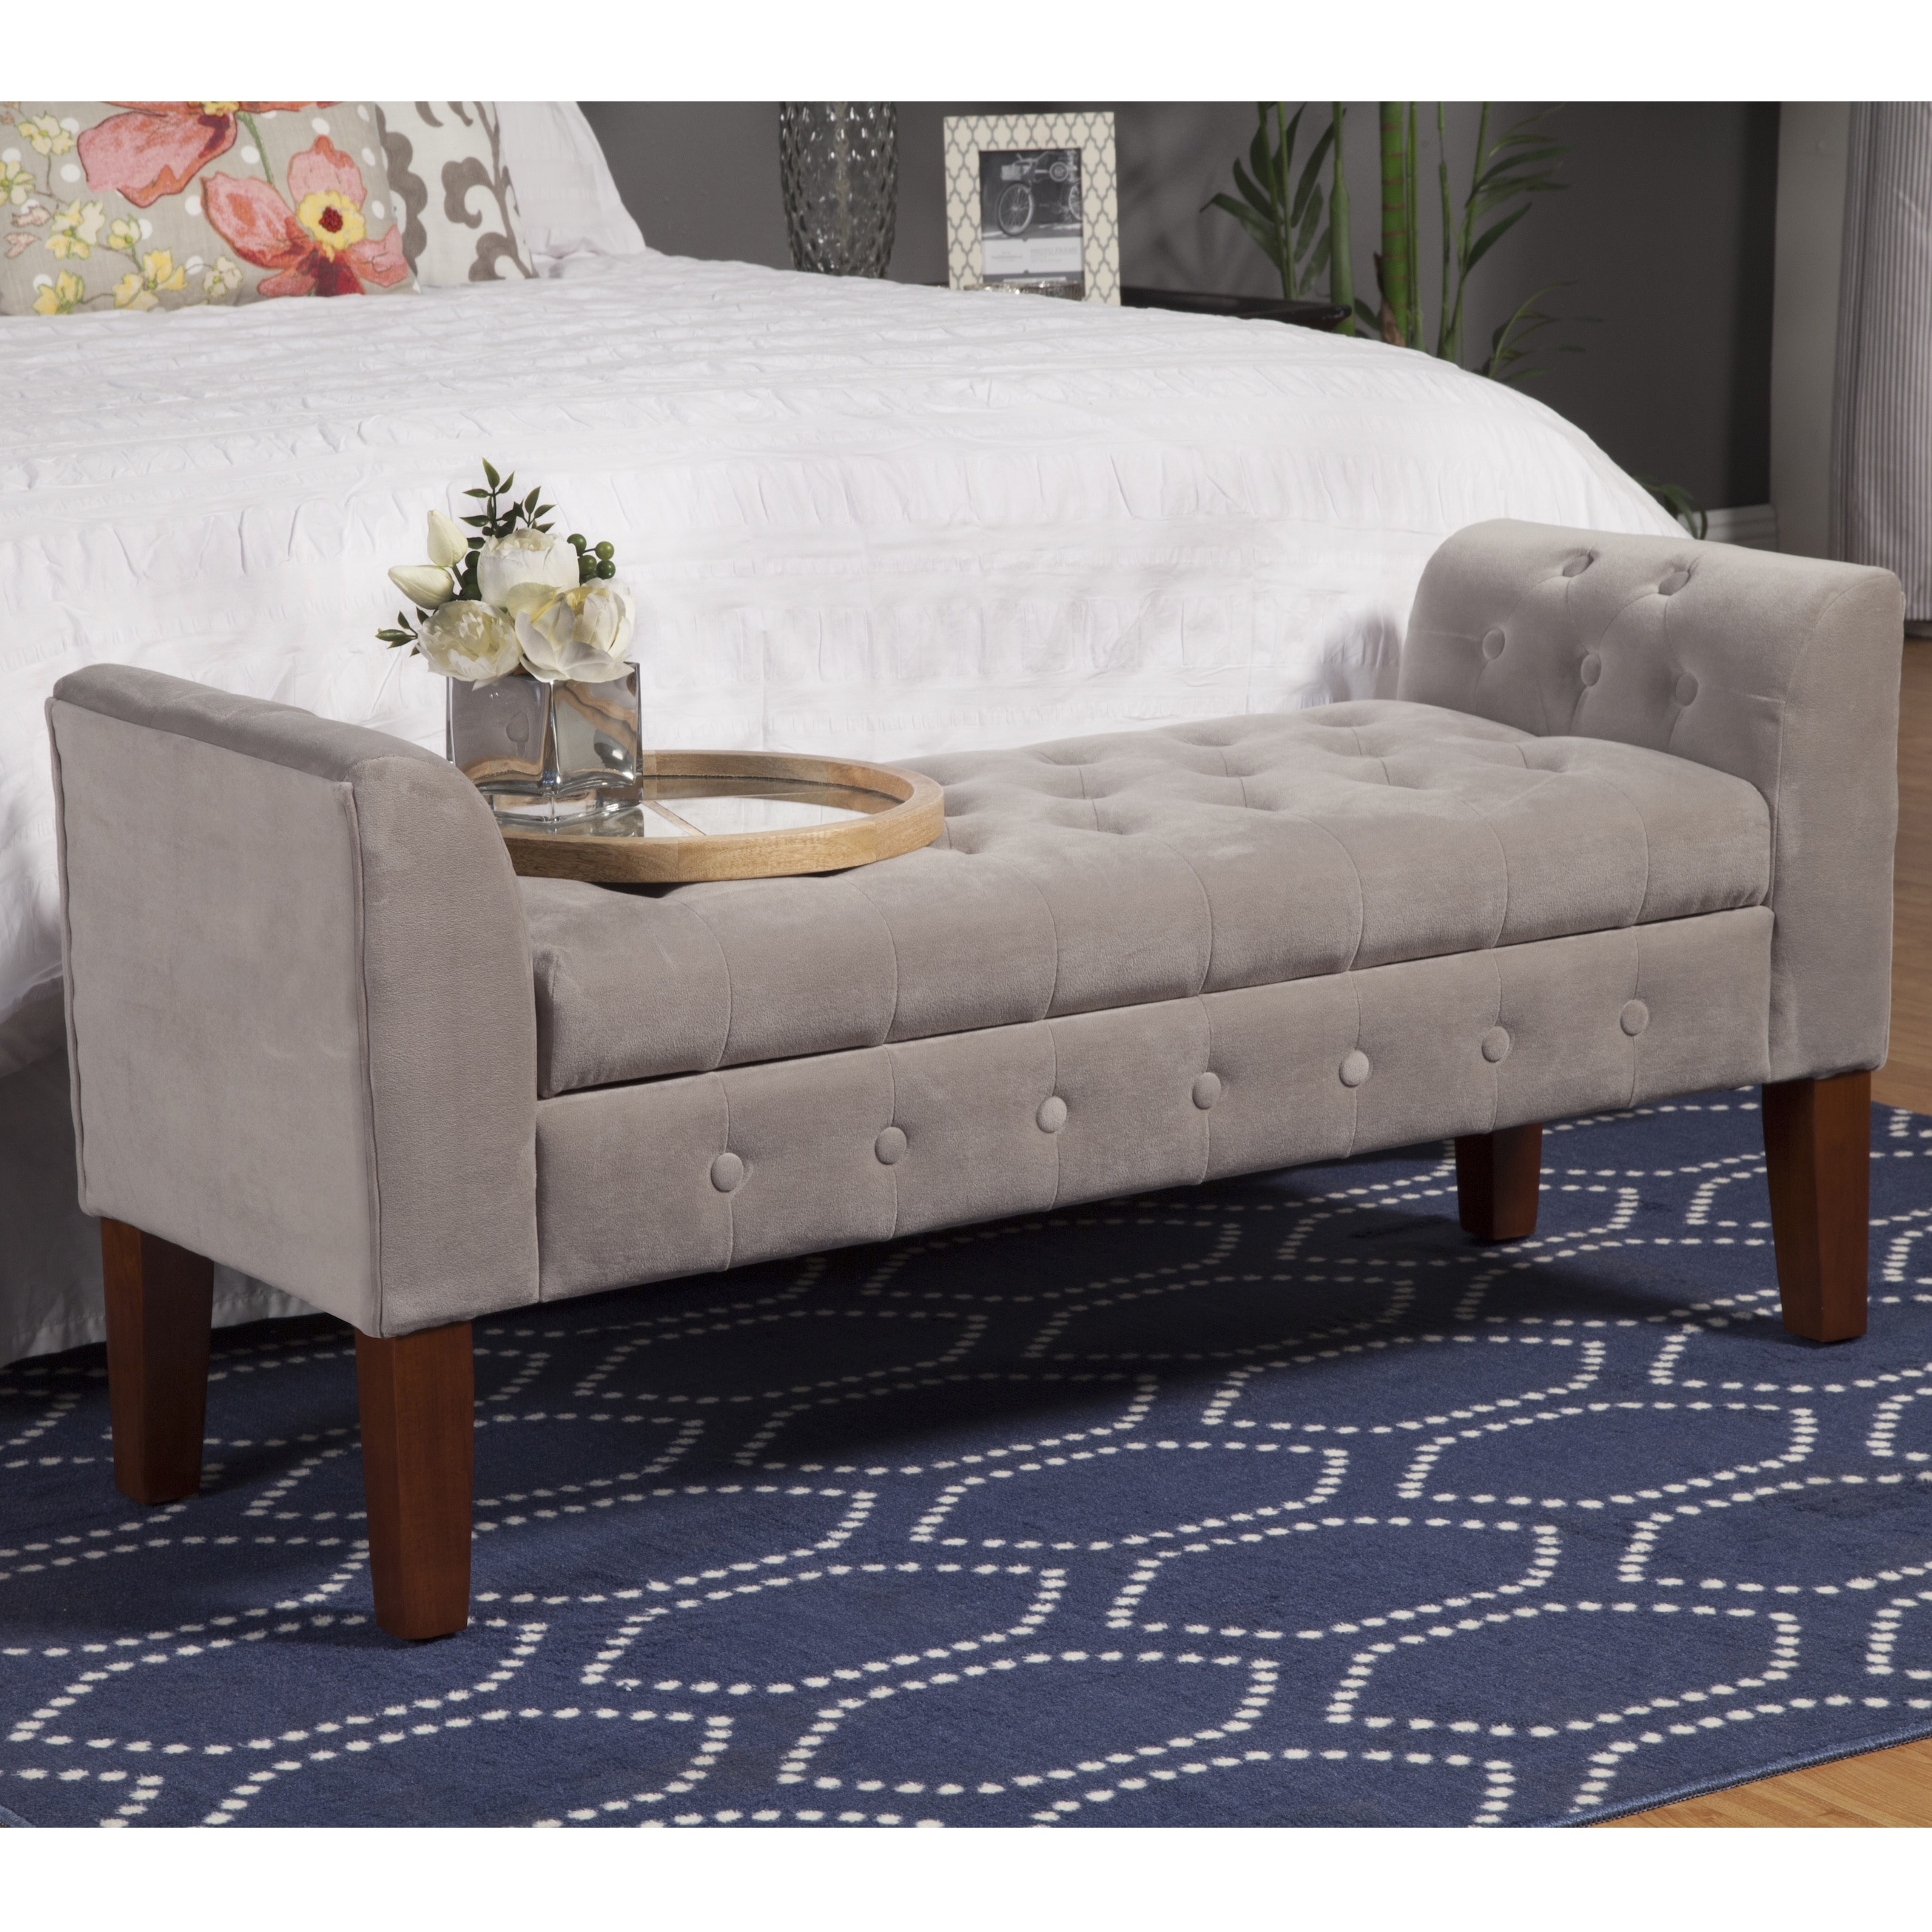 Clay Alder Home Wabasha Dove Grey Velvet Settee Style Storage Bench On Free Shipping Today 9766102